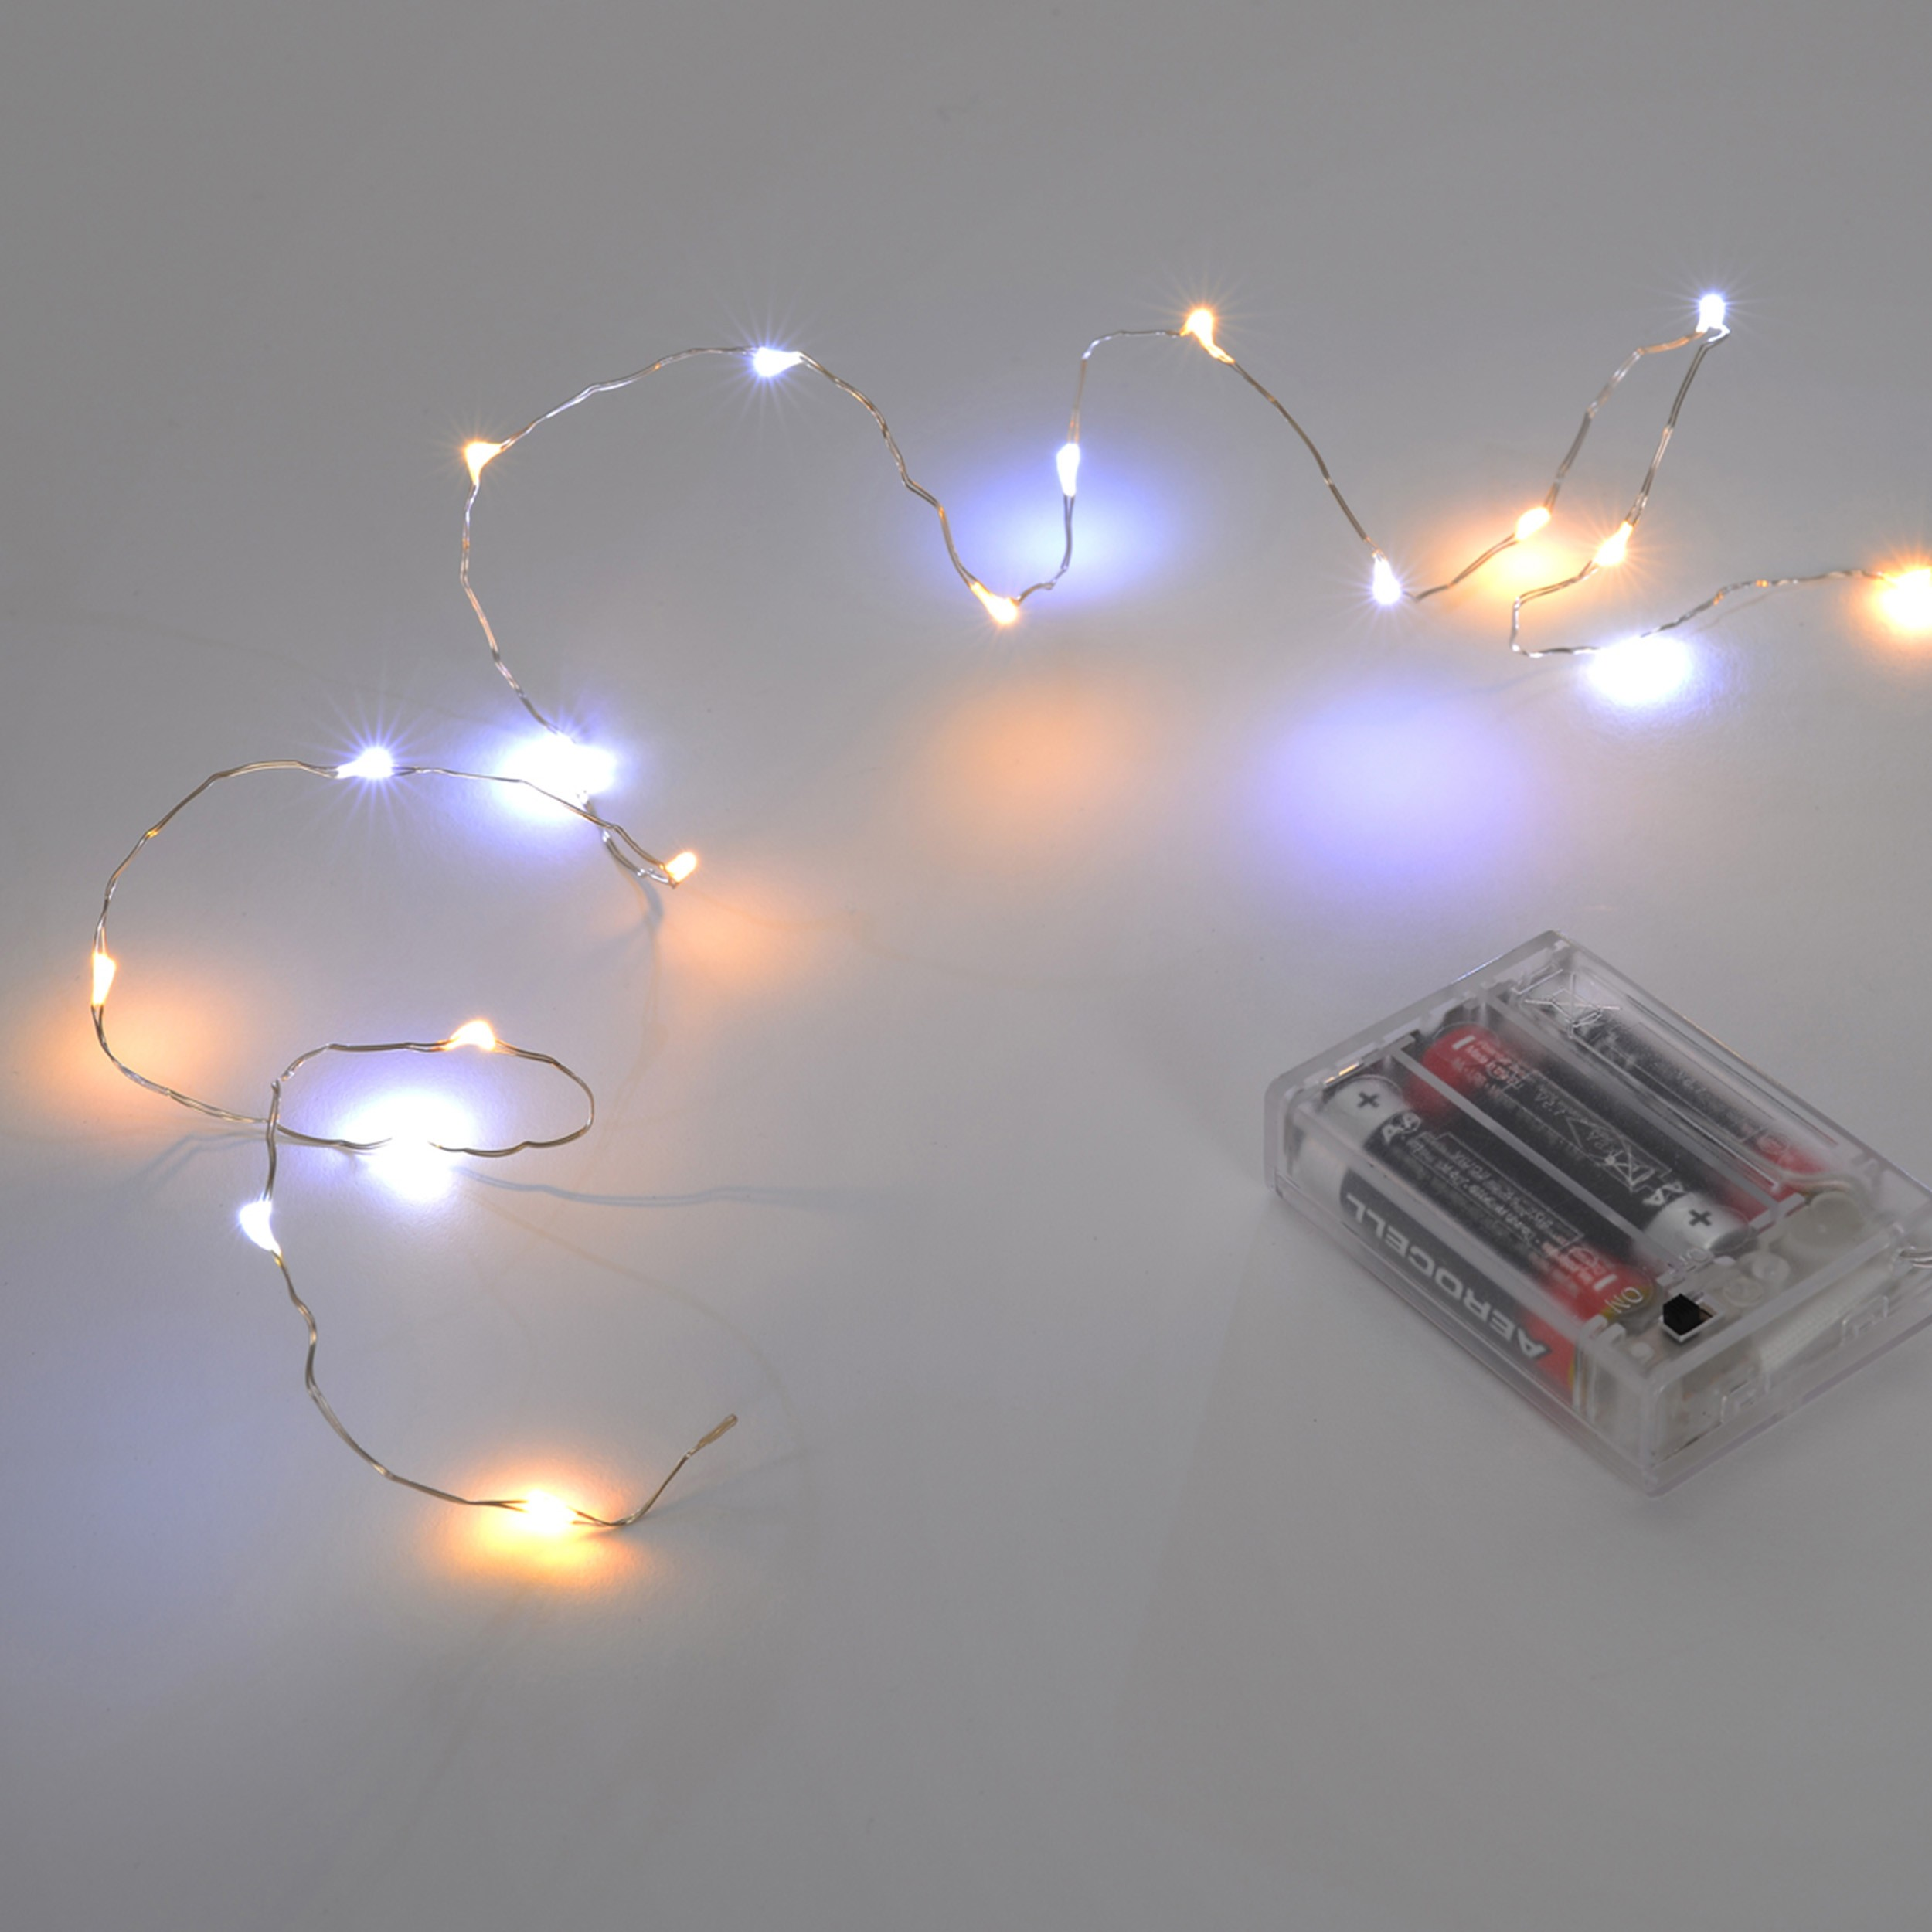 Led Lichterkette Innen Led Micro Batterie Lichterkette 20 Led Weihnachten Deko